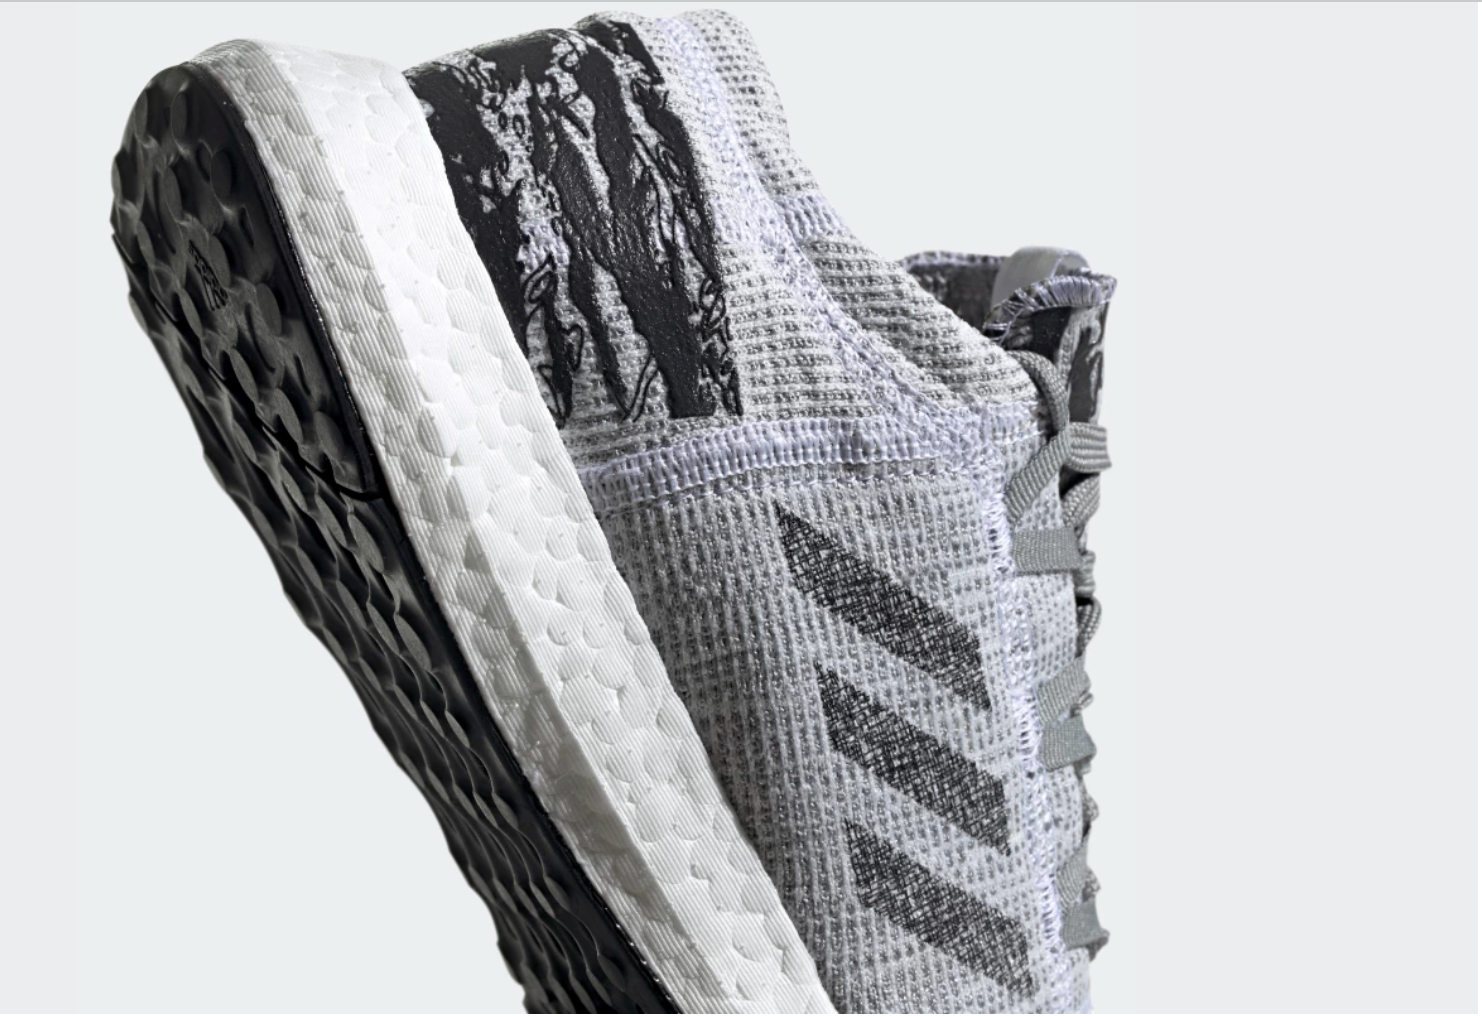 new concept 4ece4 9f129 Adidas X Undefeated PureBoost Go Review   Adidas Distance Running Shoes